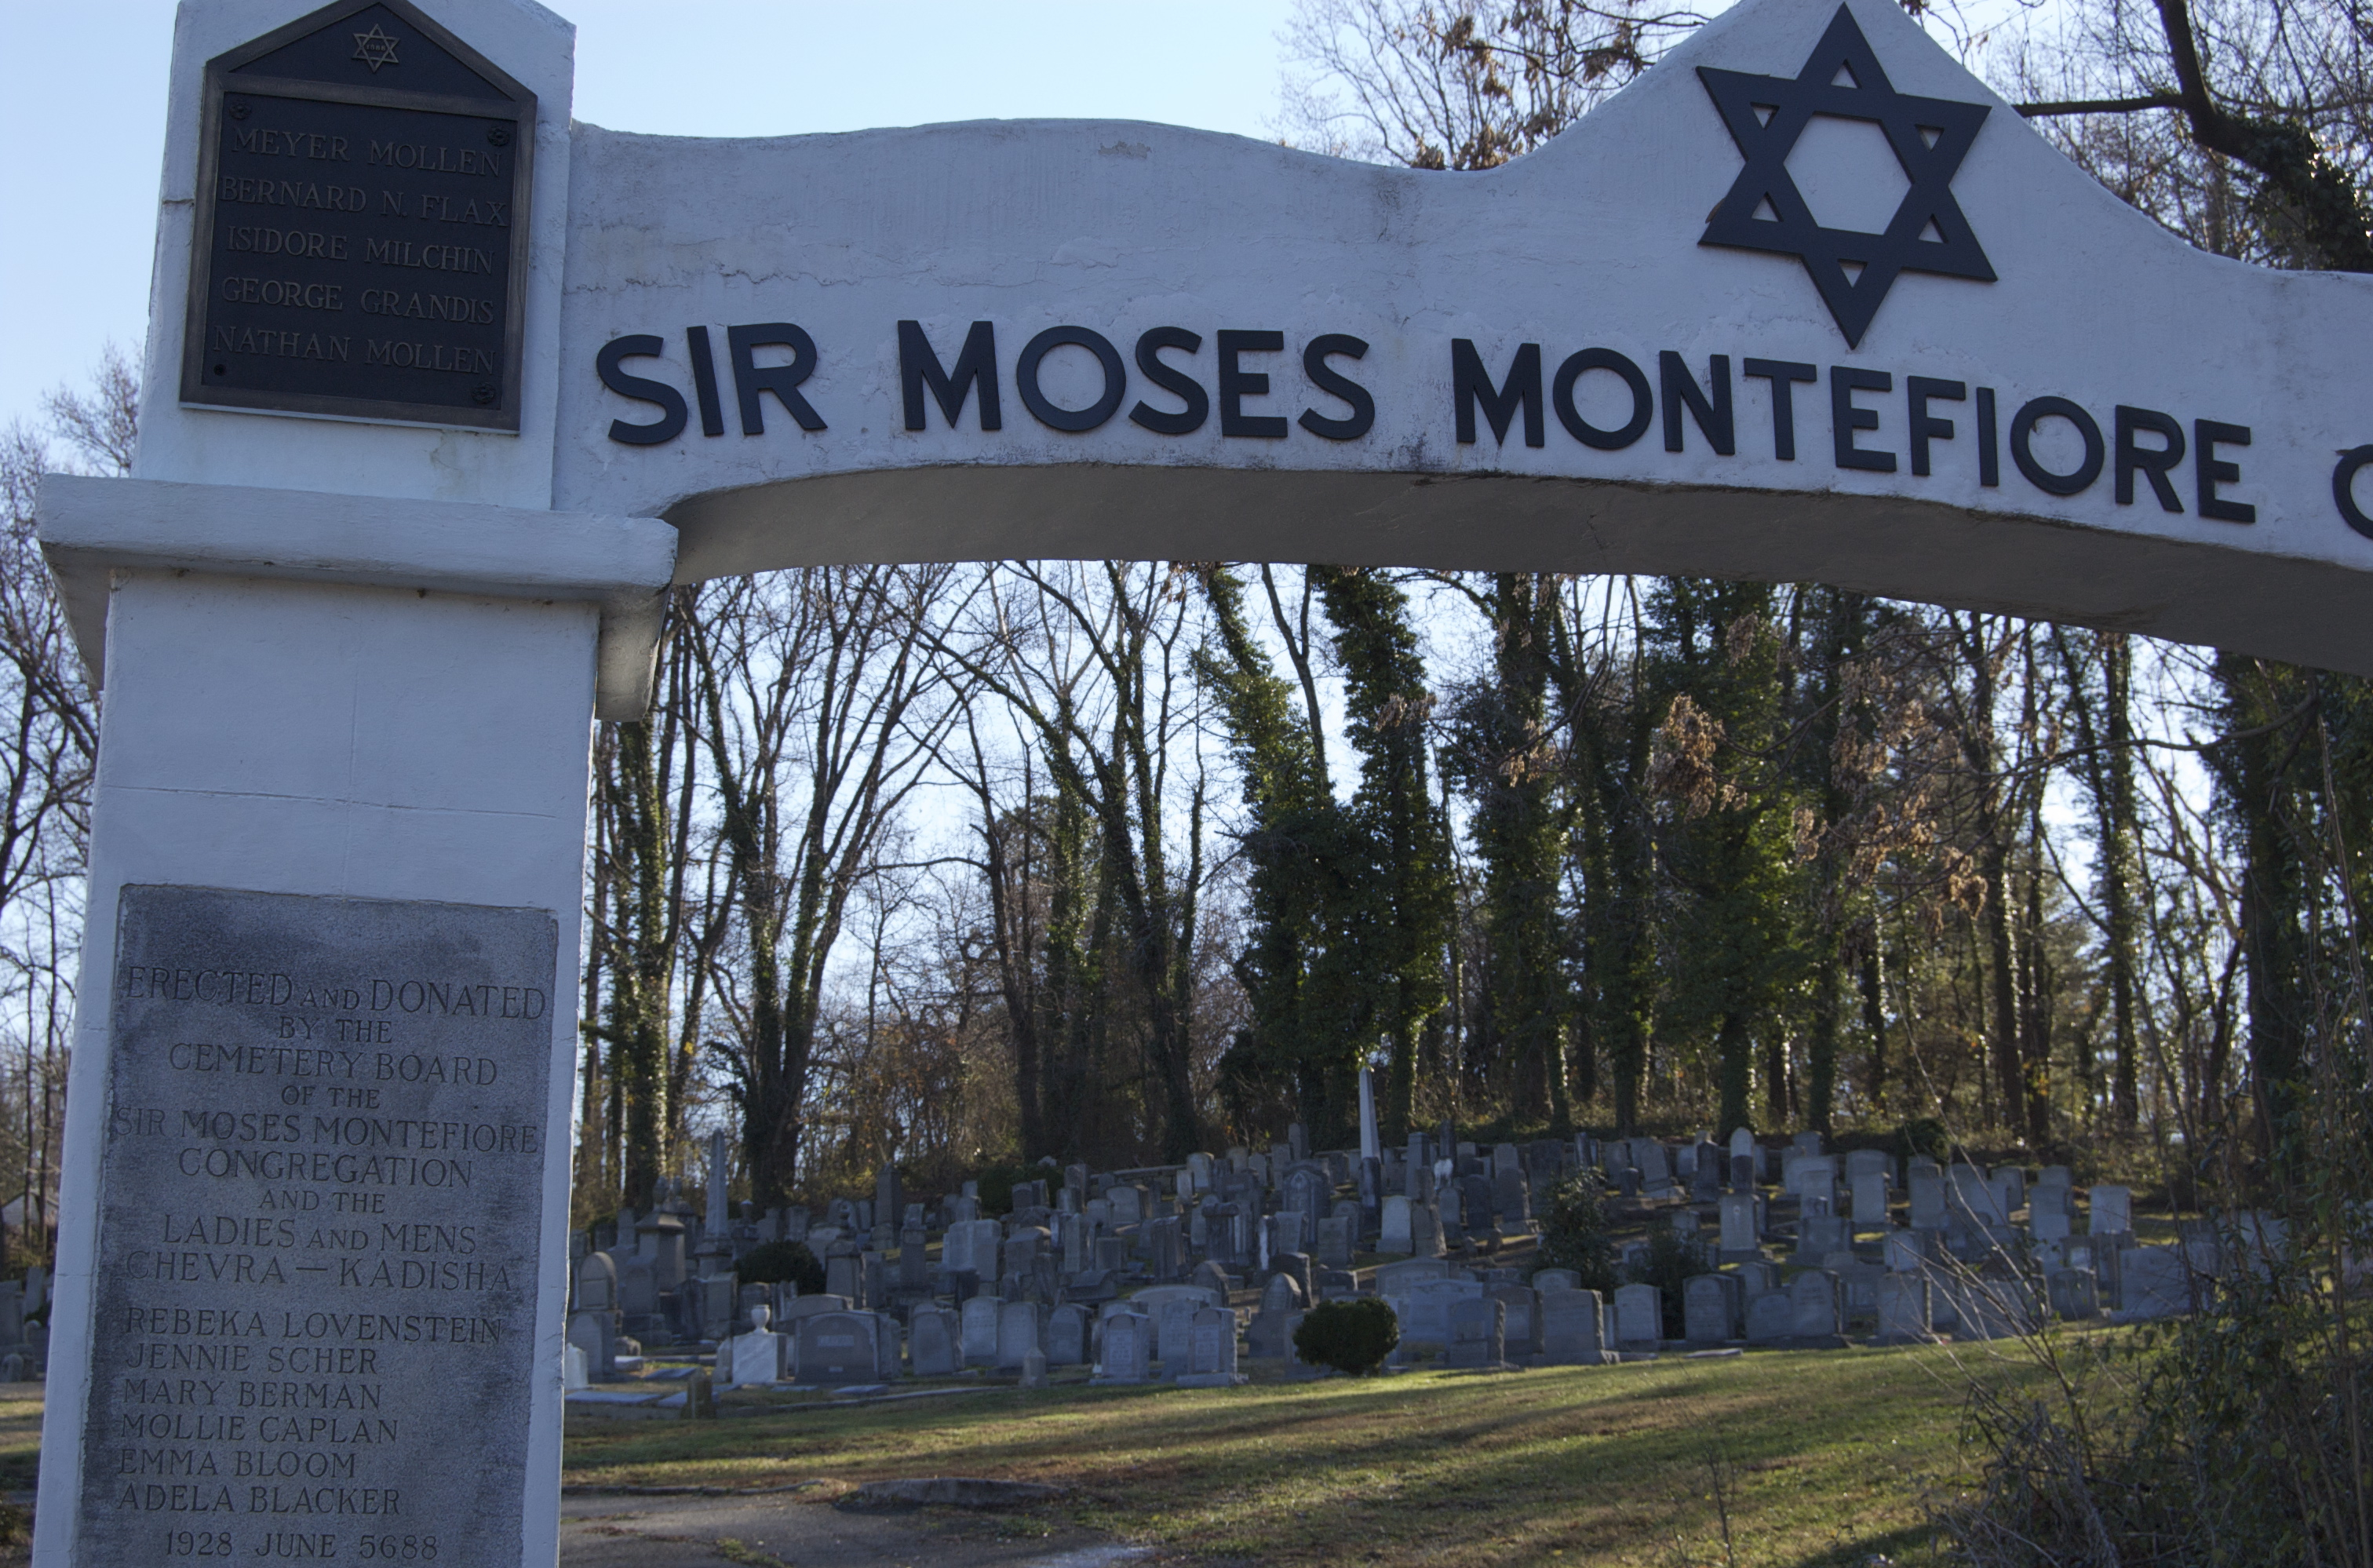 The largest cemetery is the Sir Moses Montefiore Cemetery, which was founded in 1929 by a Russian Orthodox congregation that was established in Richmond in the 1880s. Jennie Scher was a member of the Sir Moses Montefiore Congregation and was one of the founding members of the Cemetery in 1928-1929. The cemetery is still in use and it is maintained by Keneseth Beth Israel Synagogue, which is located on Patterson Avenue. (http://greaterfultonnews.org/wp-content/uploads/2009/10/Fulton-News_Oct09.pdf)